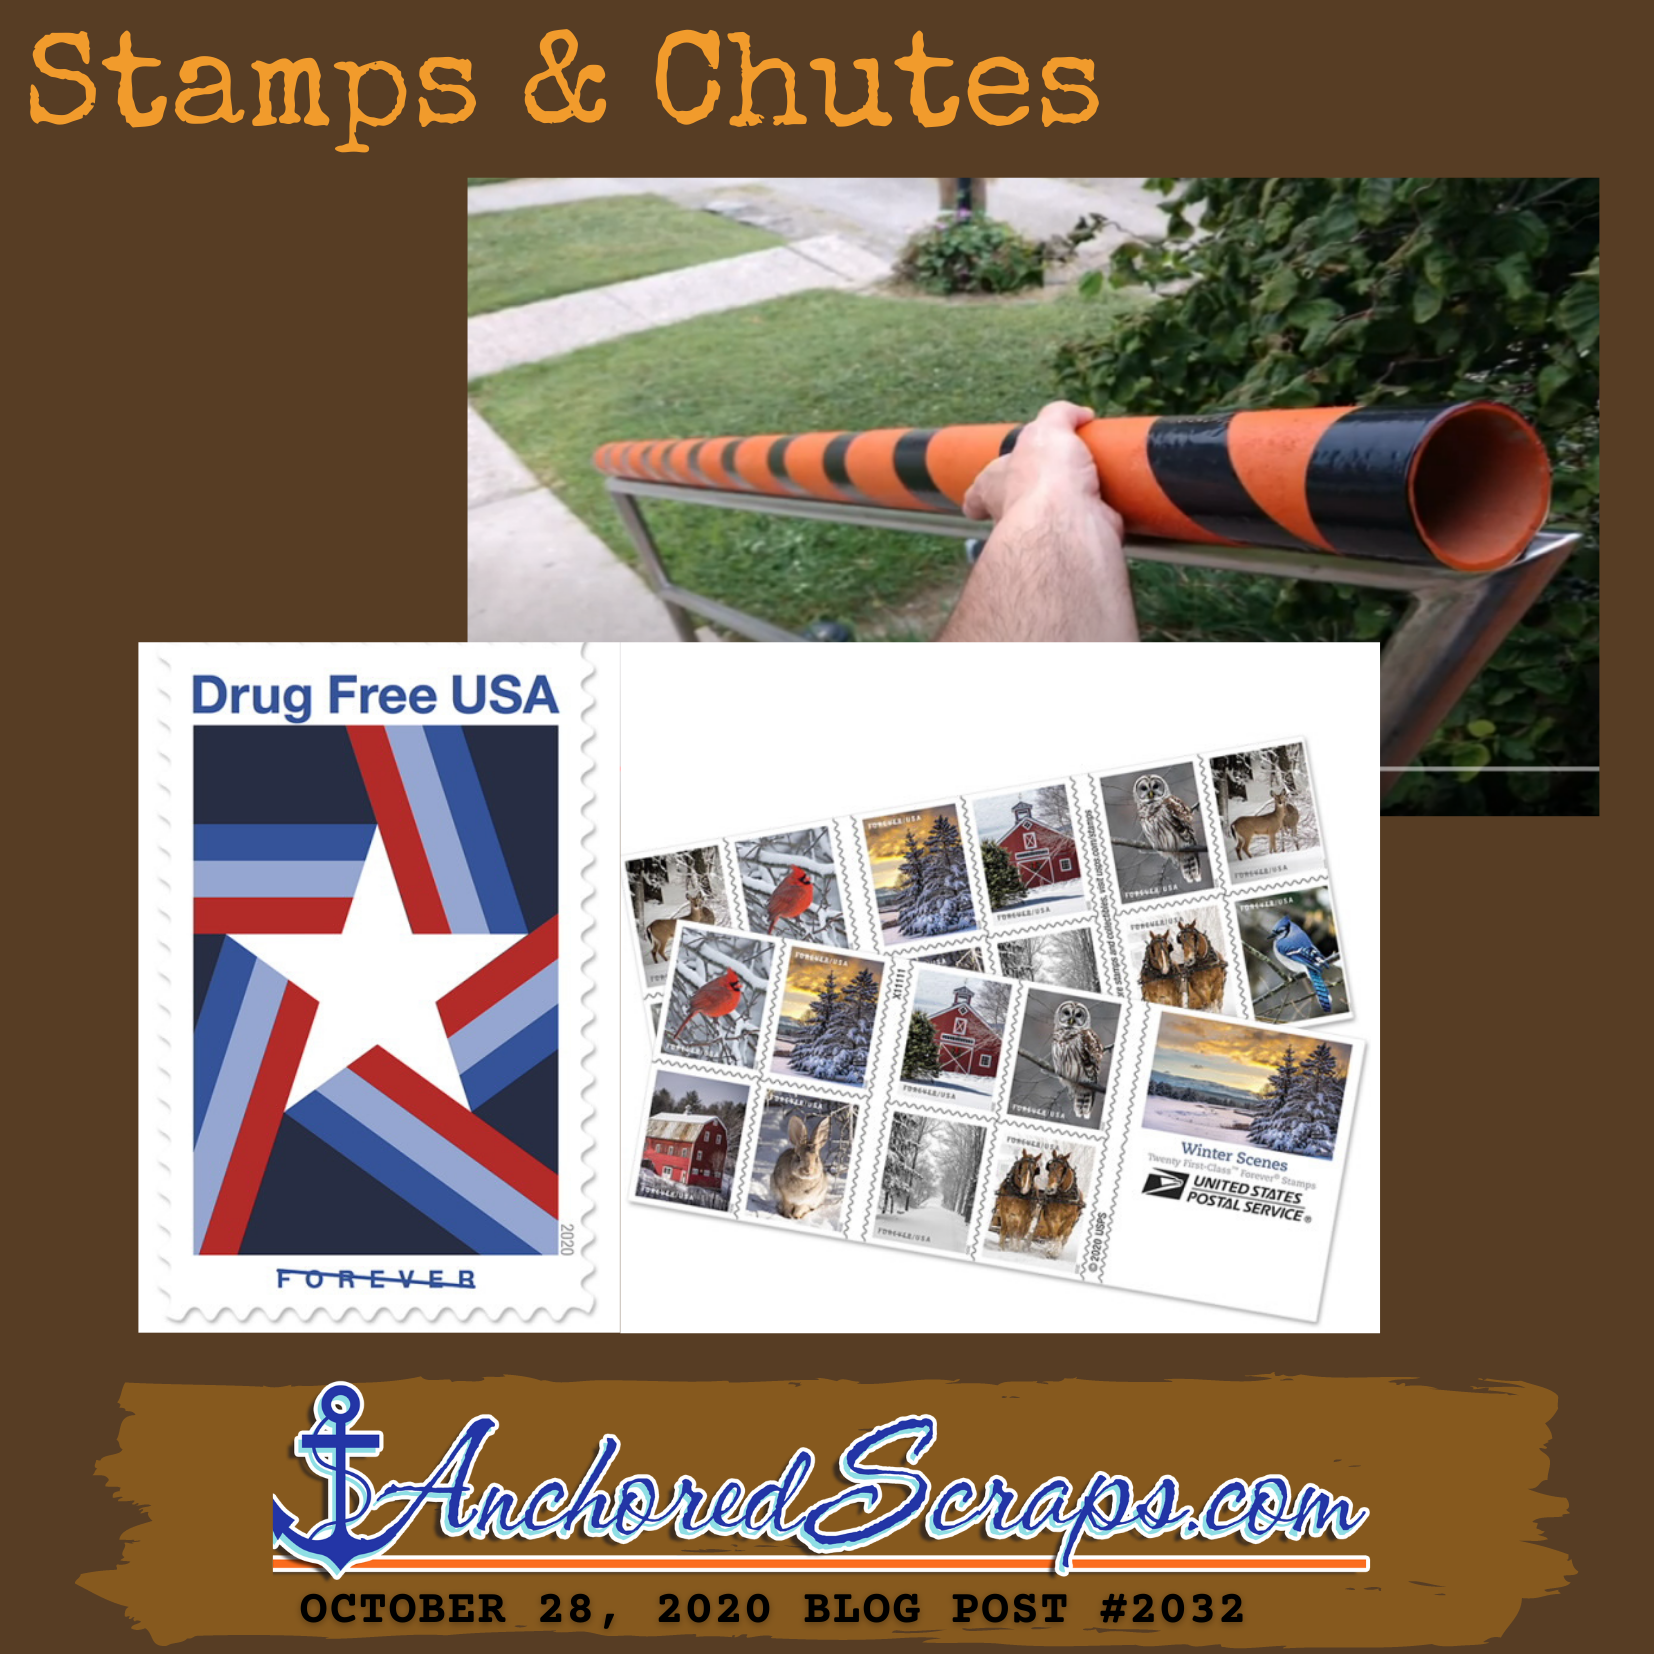 Stamps & Chutes